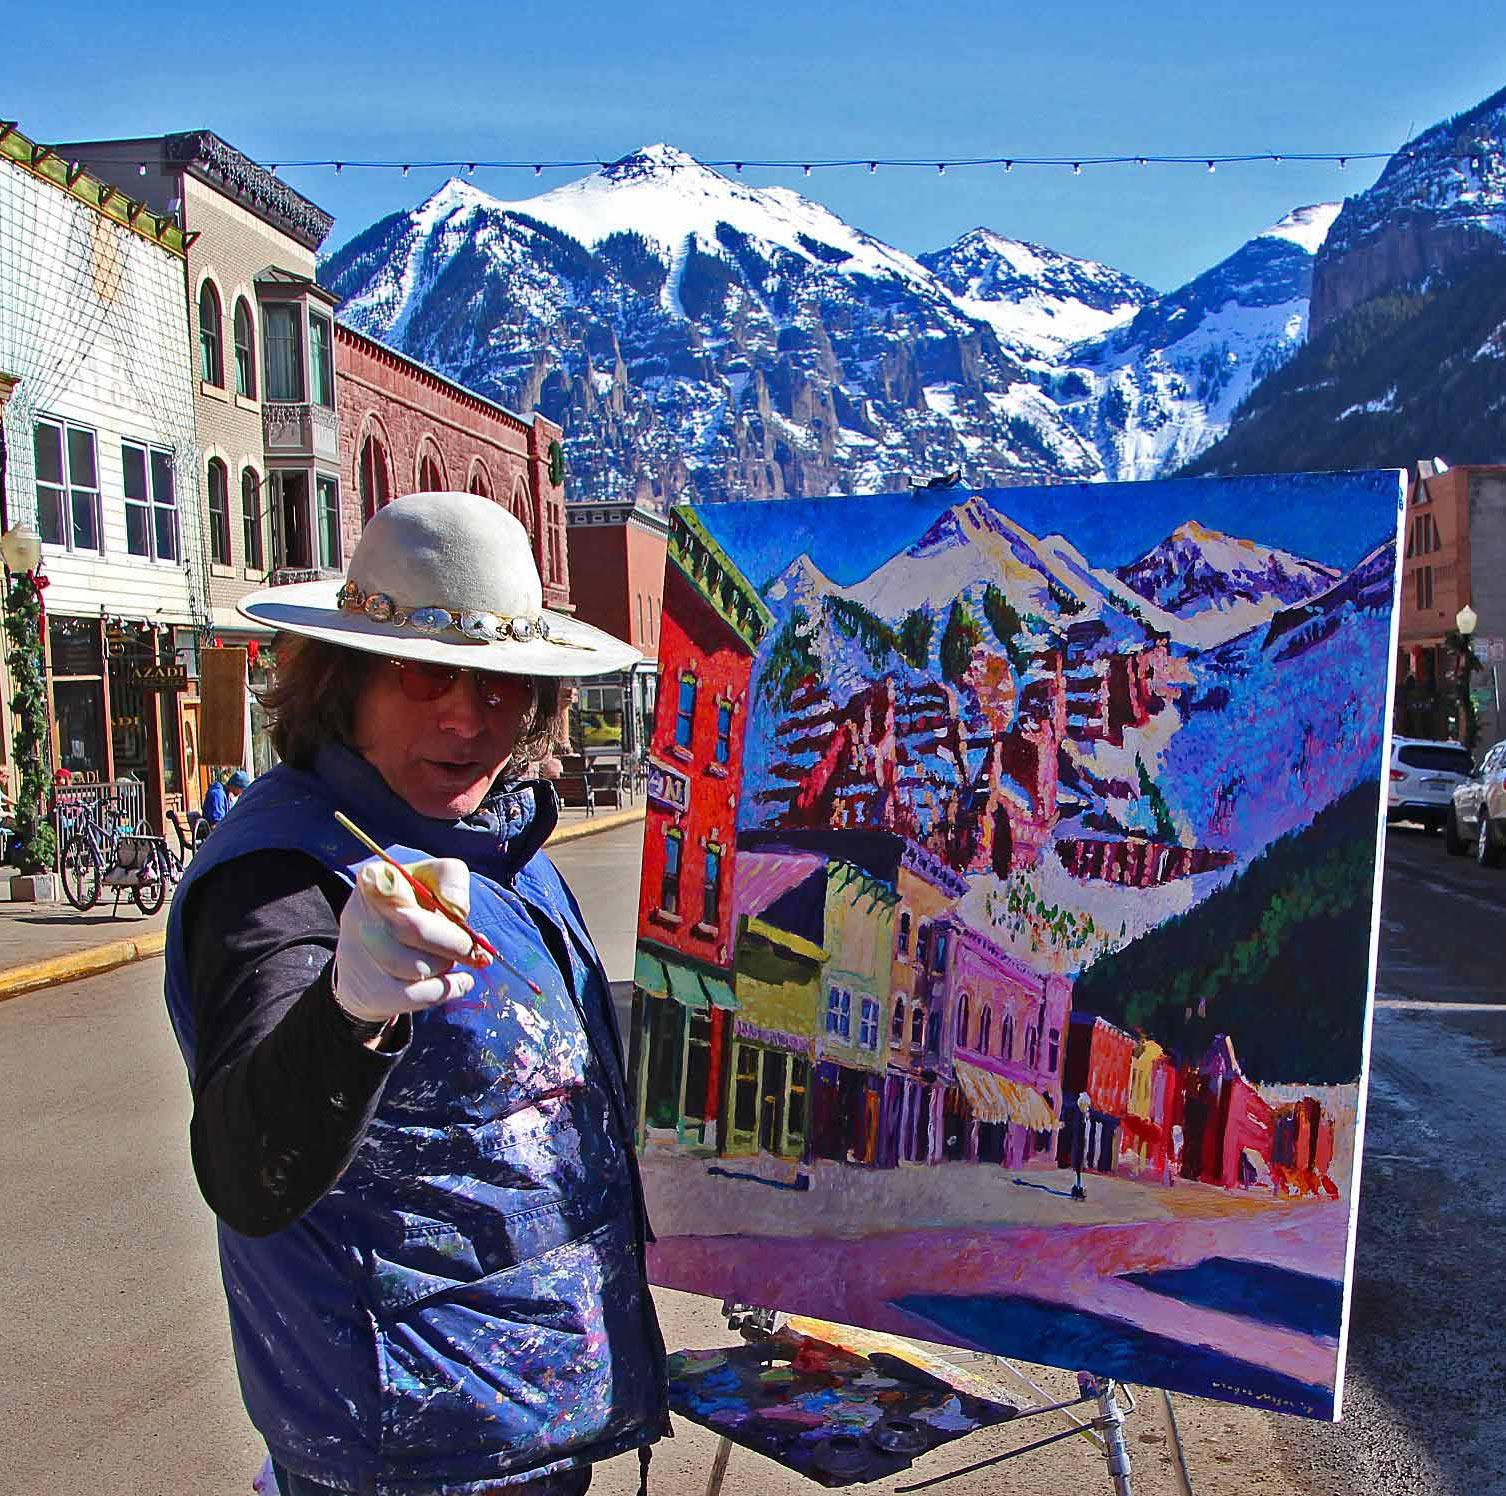 Roger Mason resident artist in Telluride - the New Sheridan Hotel is his muse